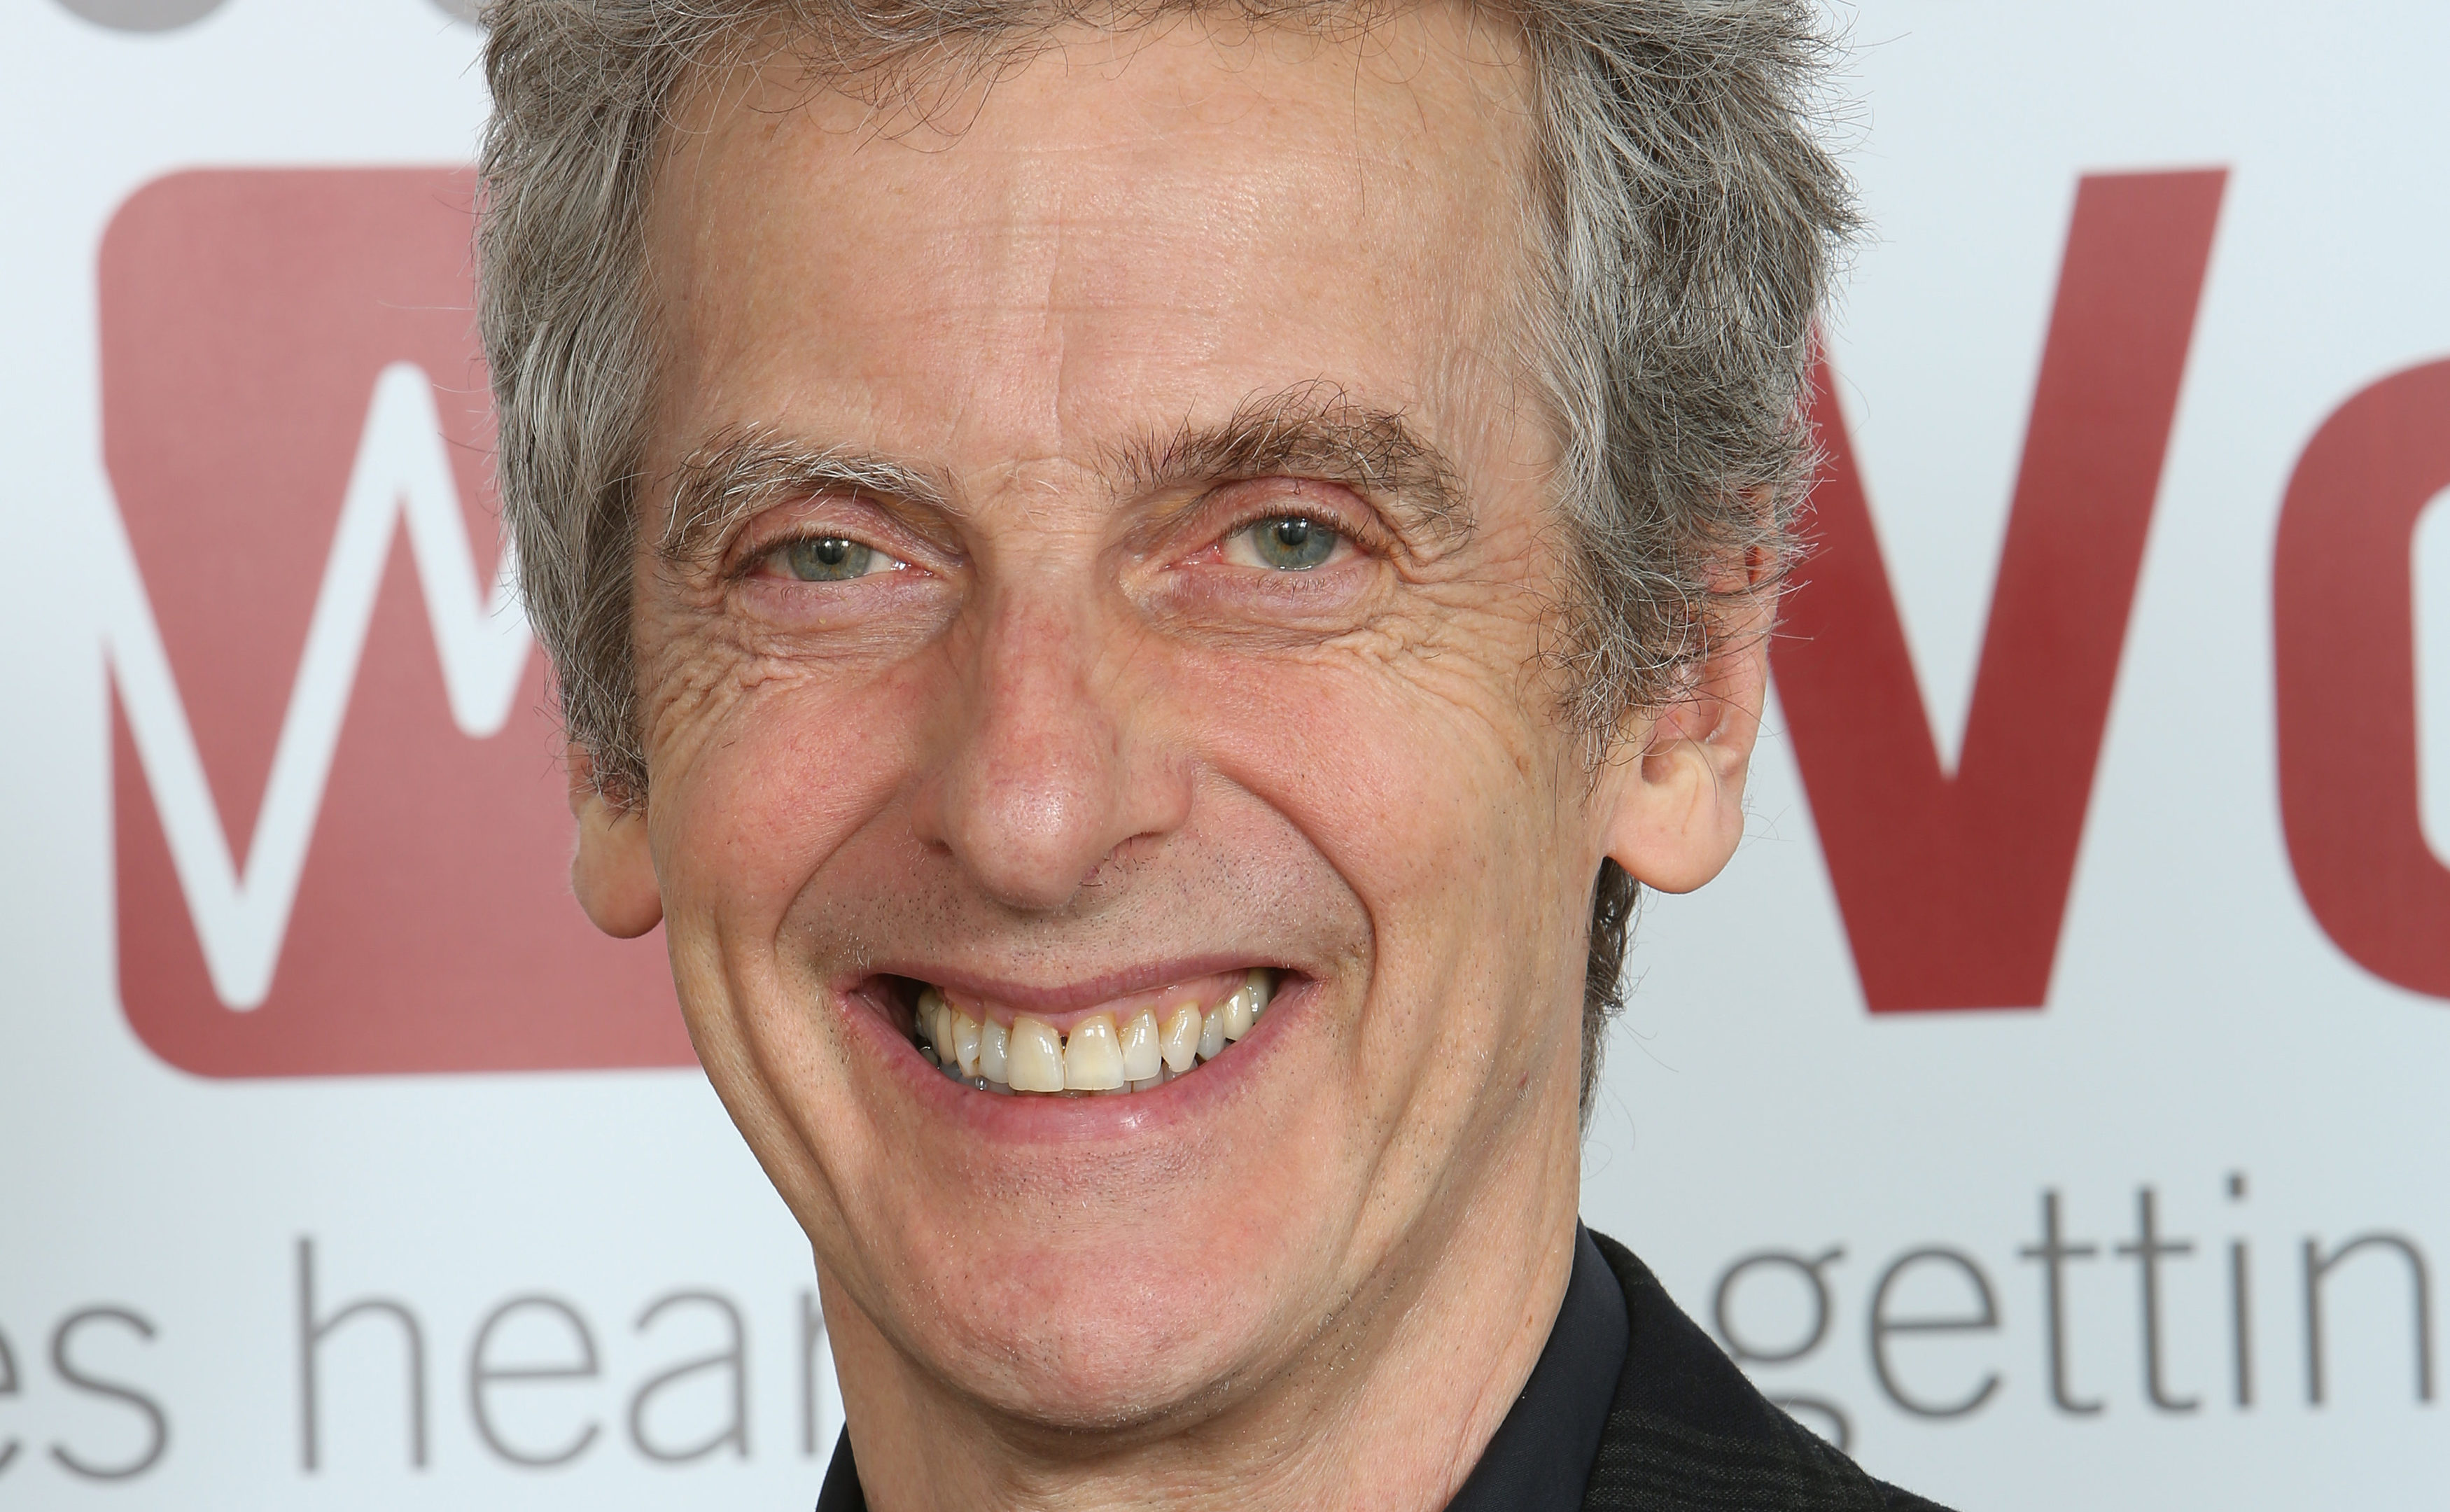 Peter Capaldi hosted the ceremony